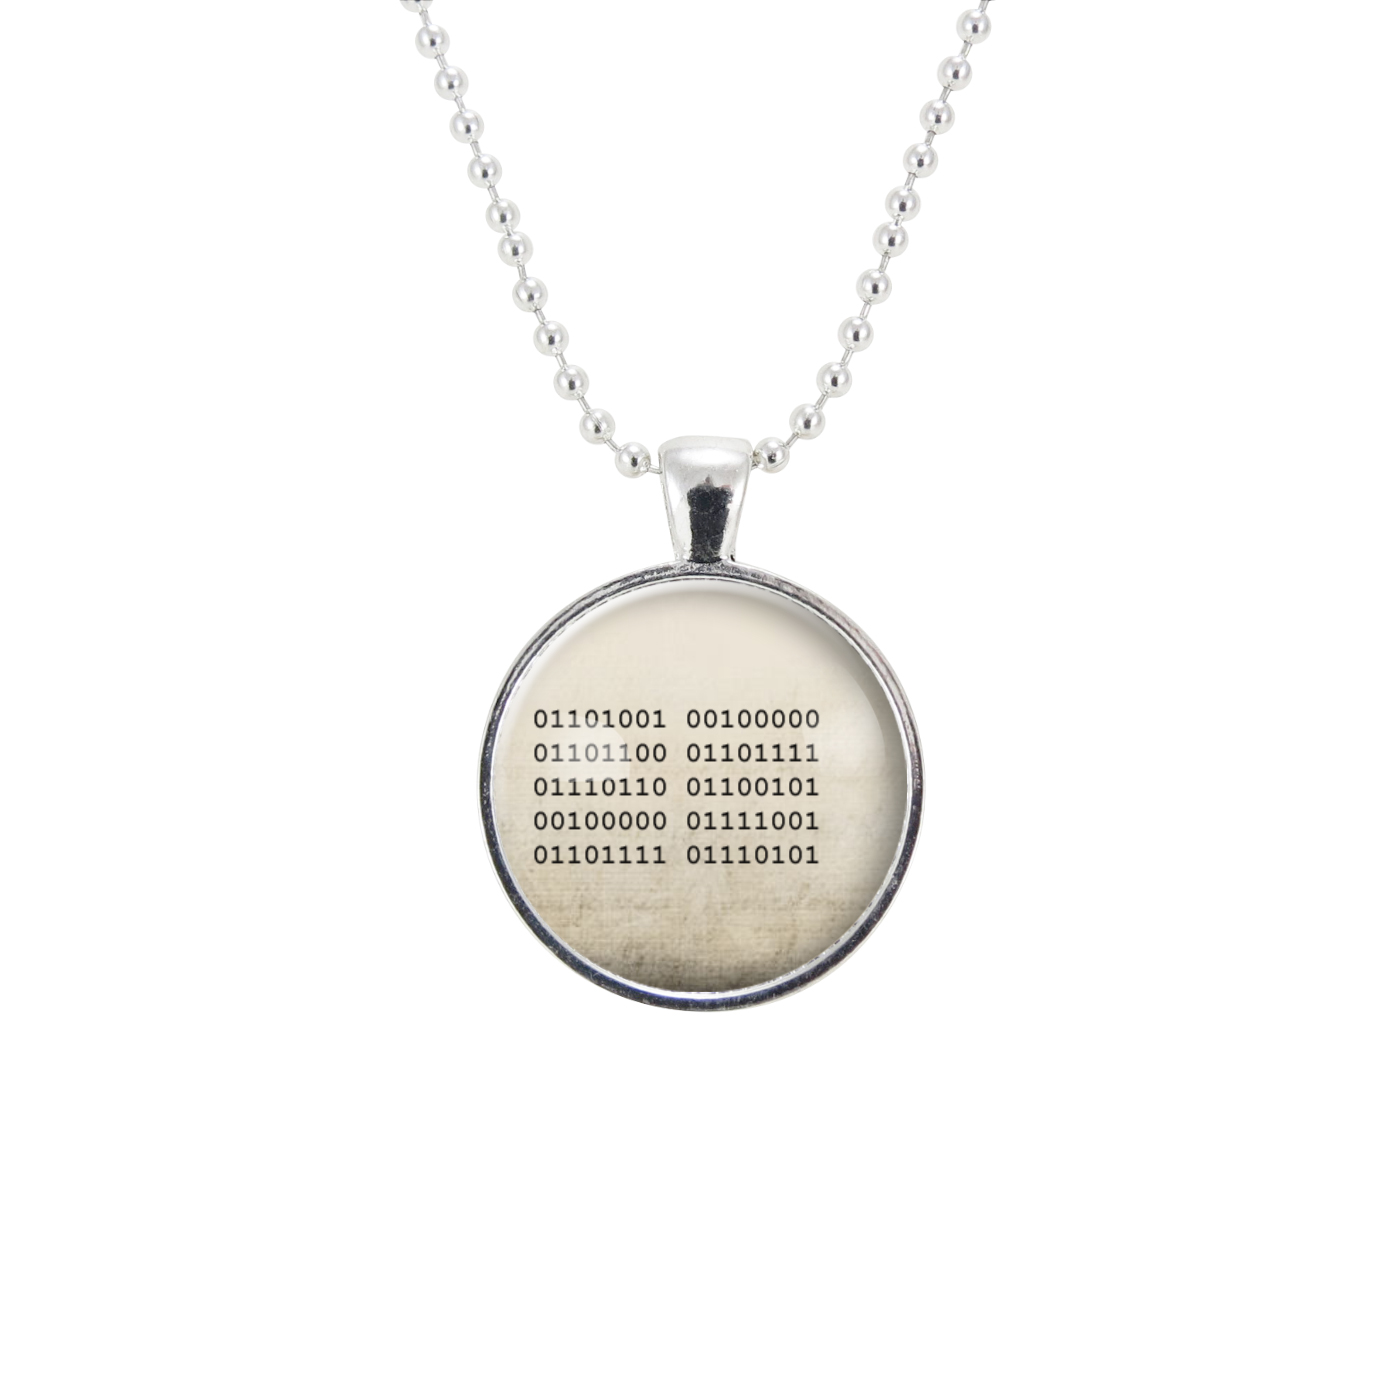 Binary Code I Love You Necklace Romantic Nerd Gifts For Women Cute Geek Gift Ideas For Girlfriend Cellsdividing Online Store Powered By Storenvy